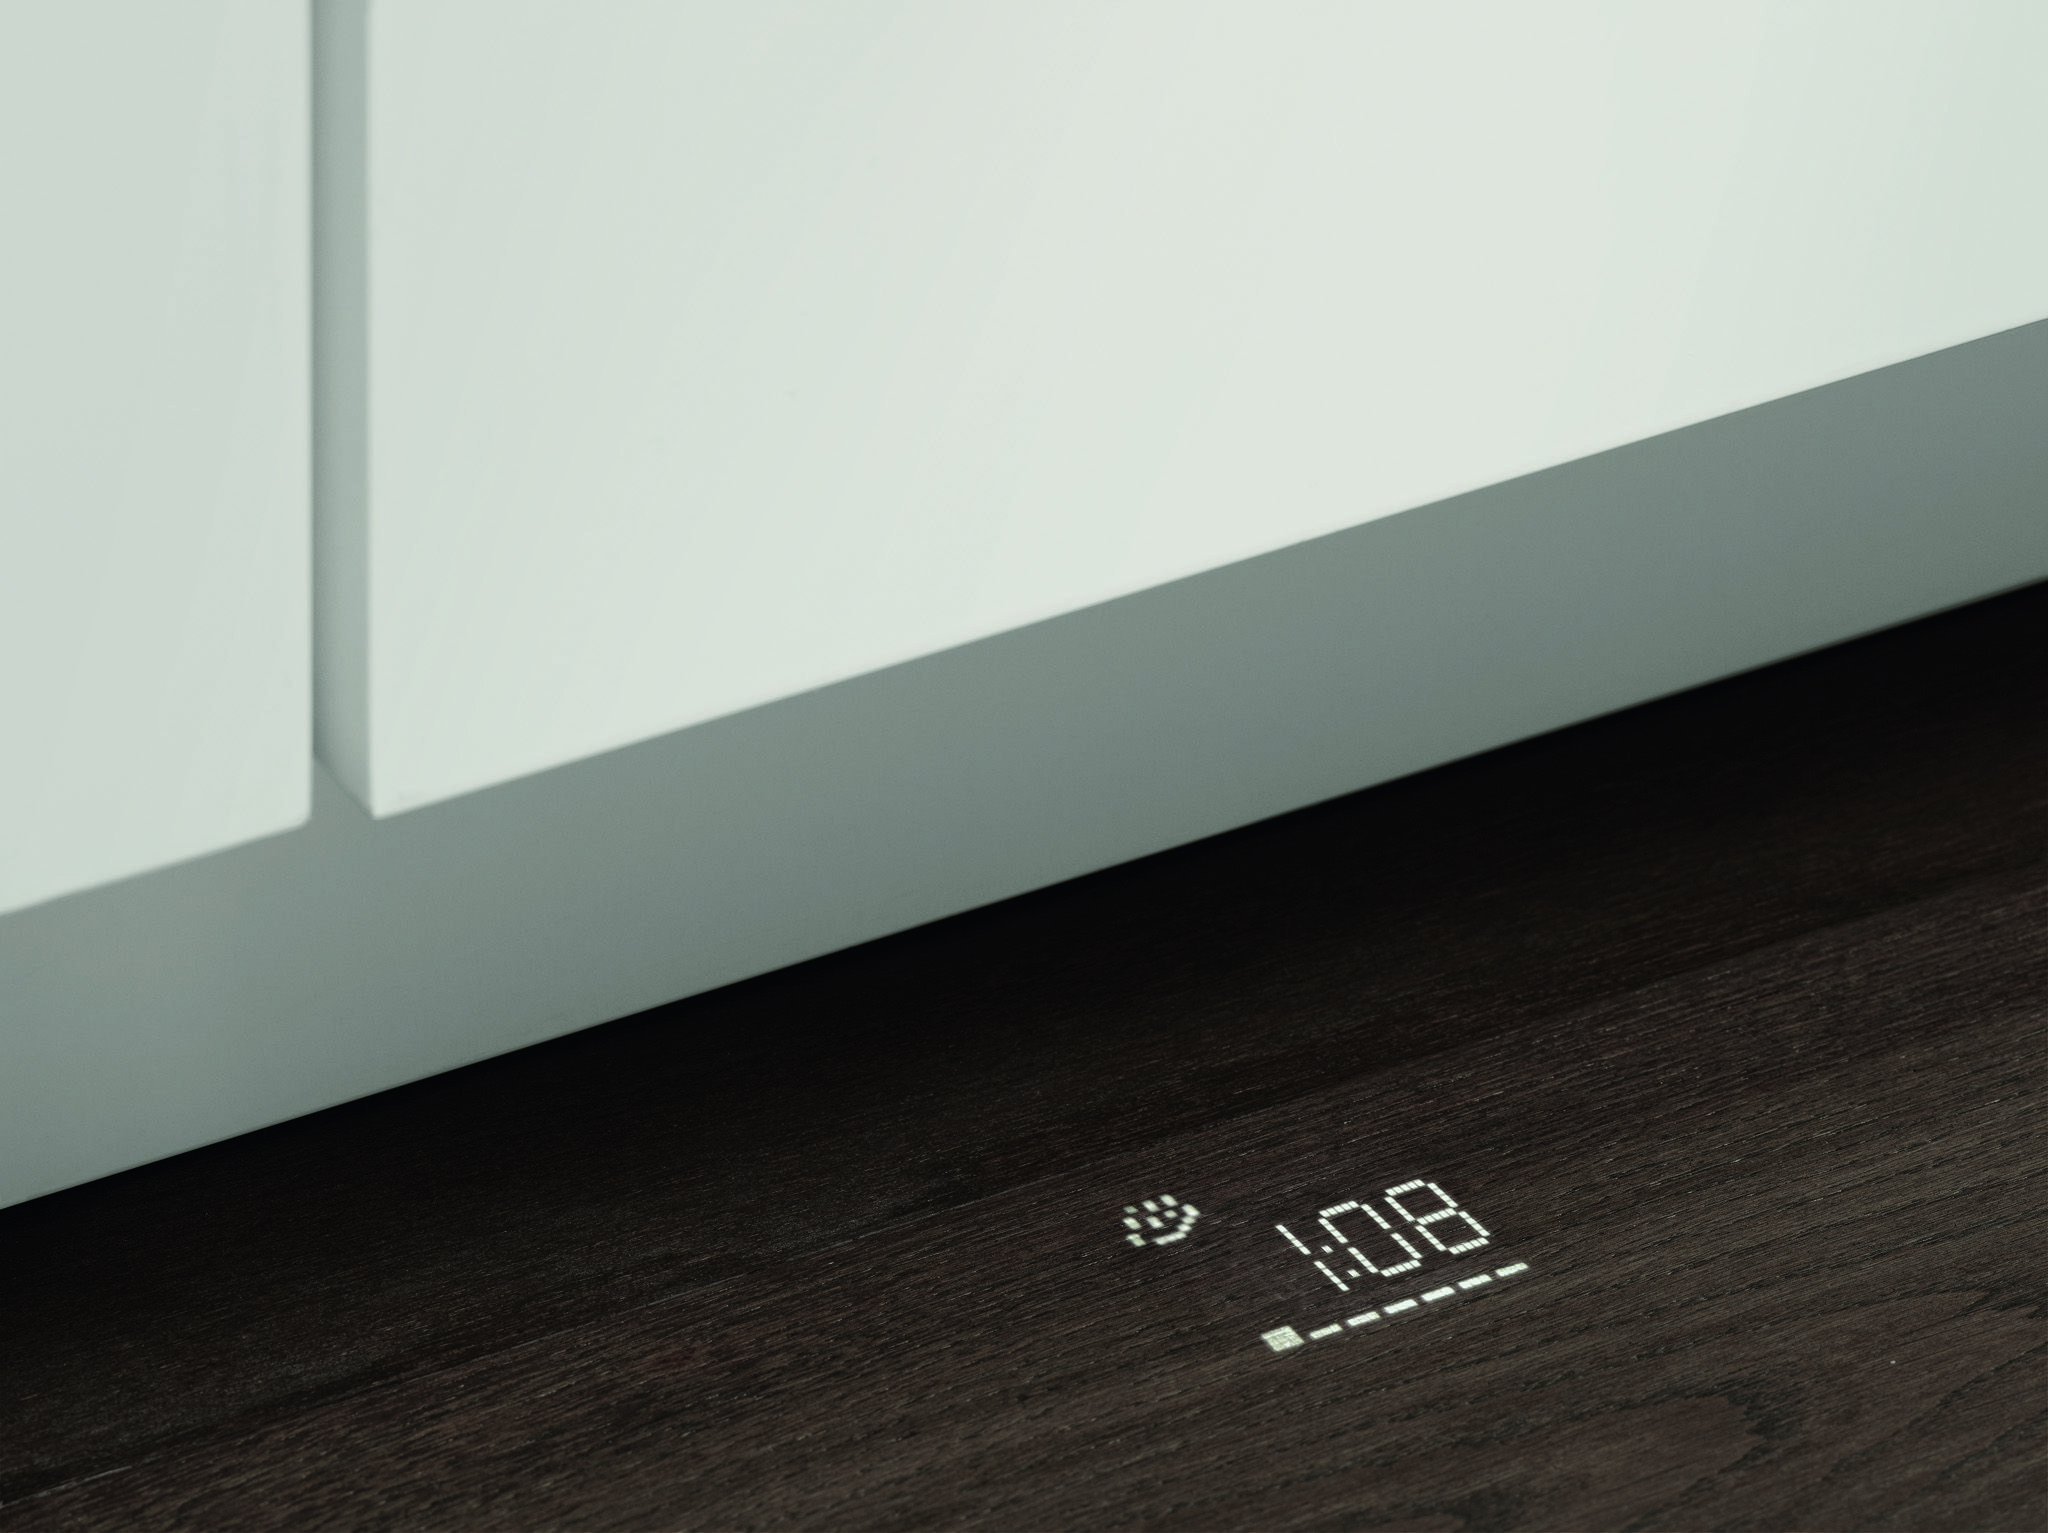 Bosch's new timelight! These dishwashers are so quiet they